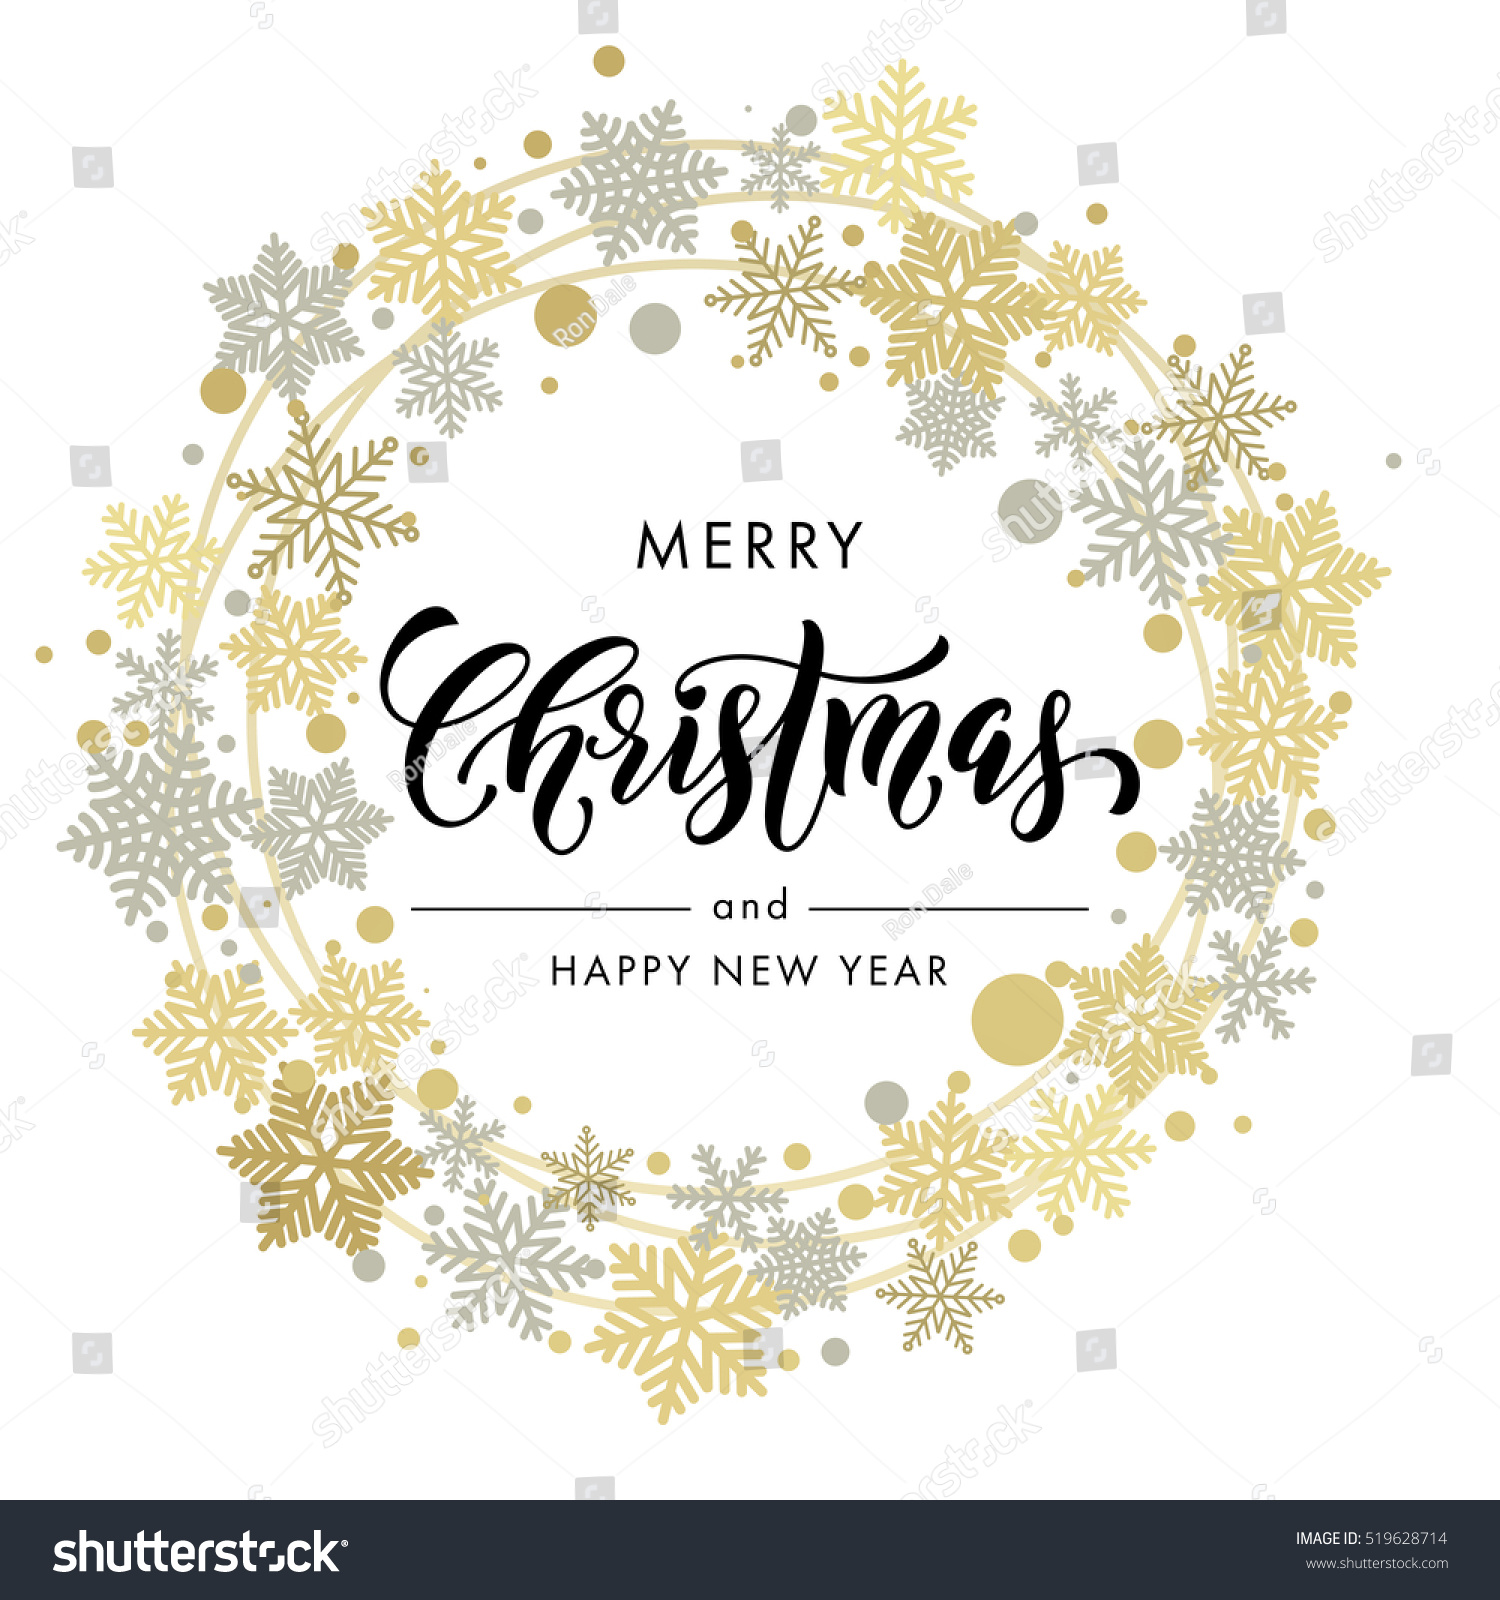 Merry Christmas New Year Wish Greeting Stock Vector (Royalty Free ...